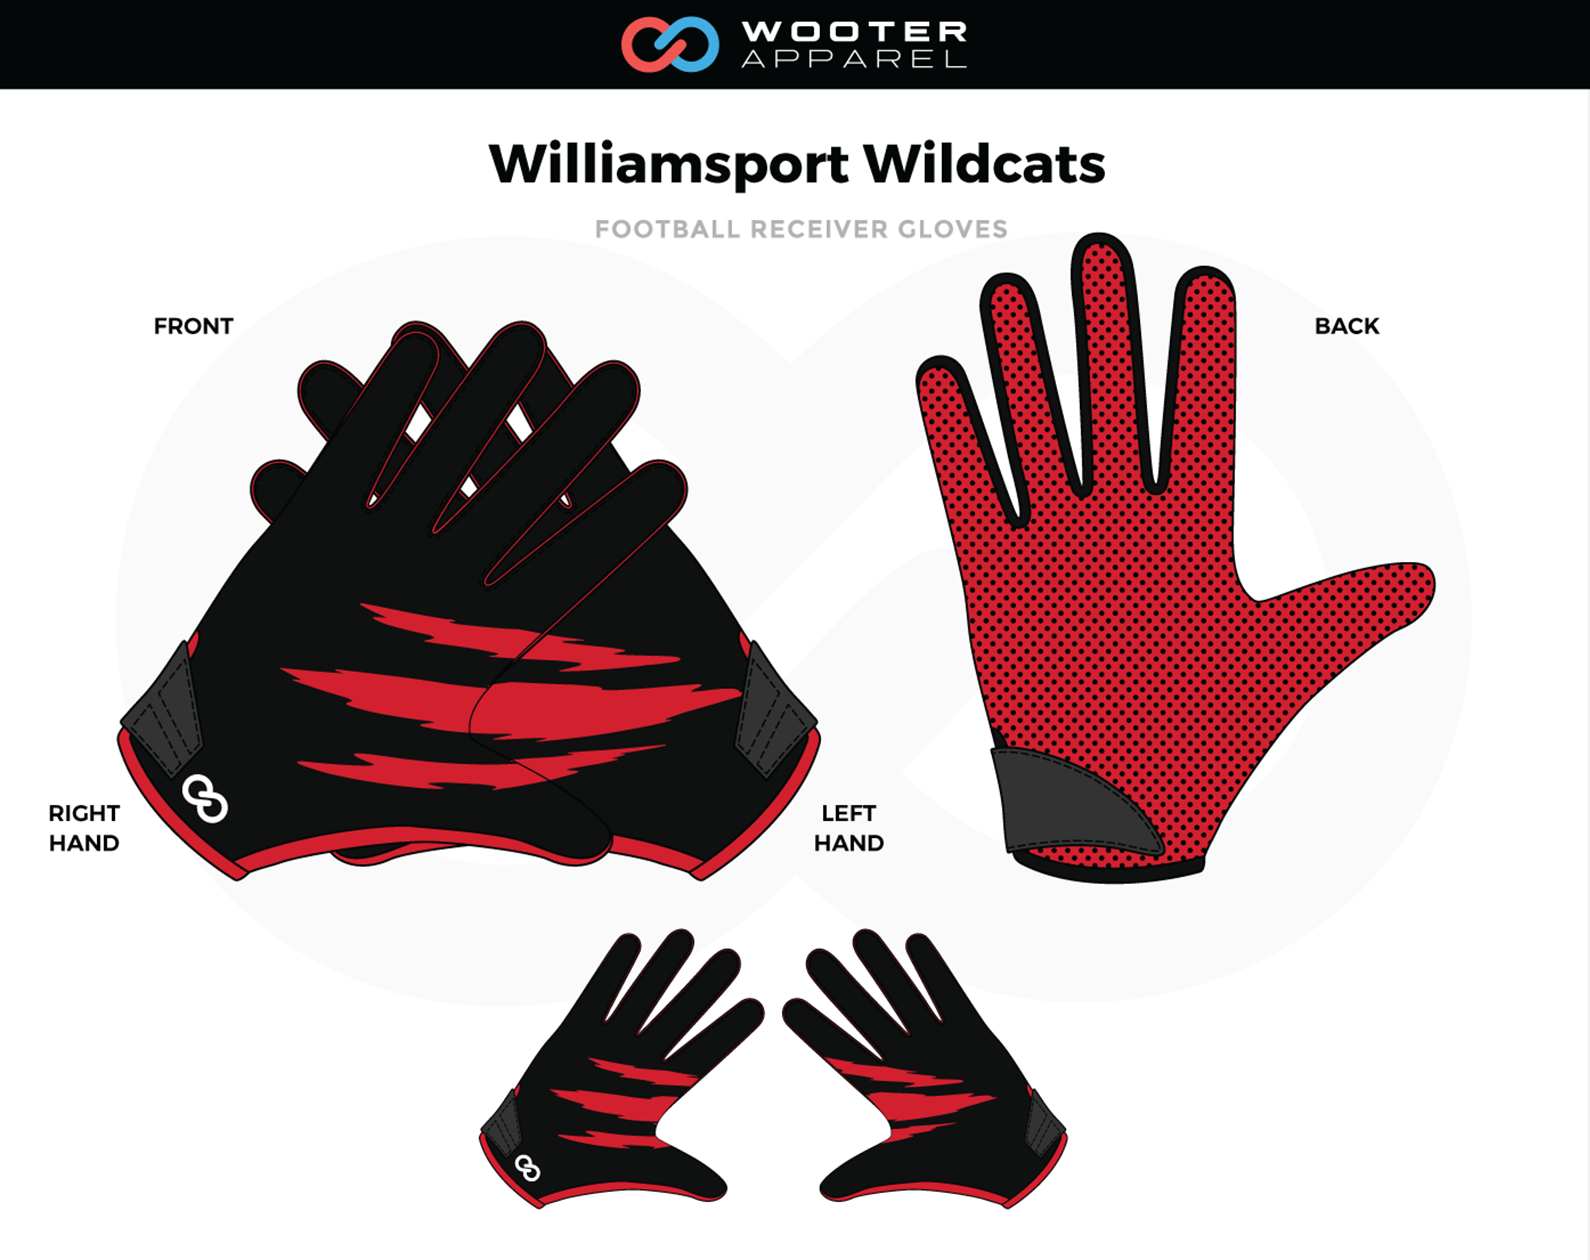 Williamsport-Wildcats-Sublimated-Football-Receiver-Gloves.png